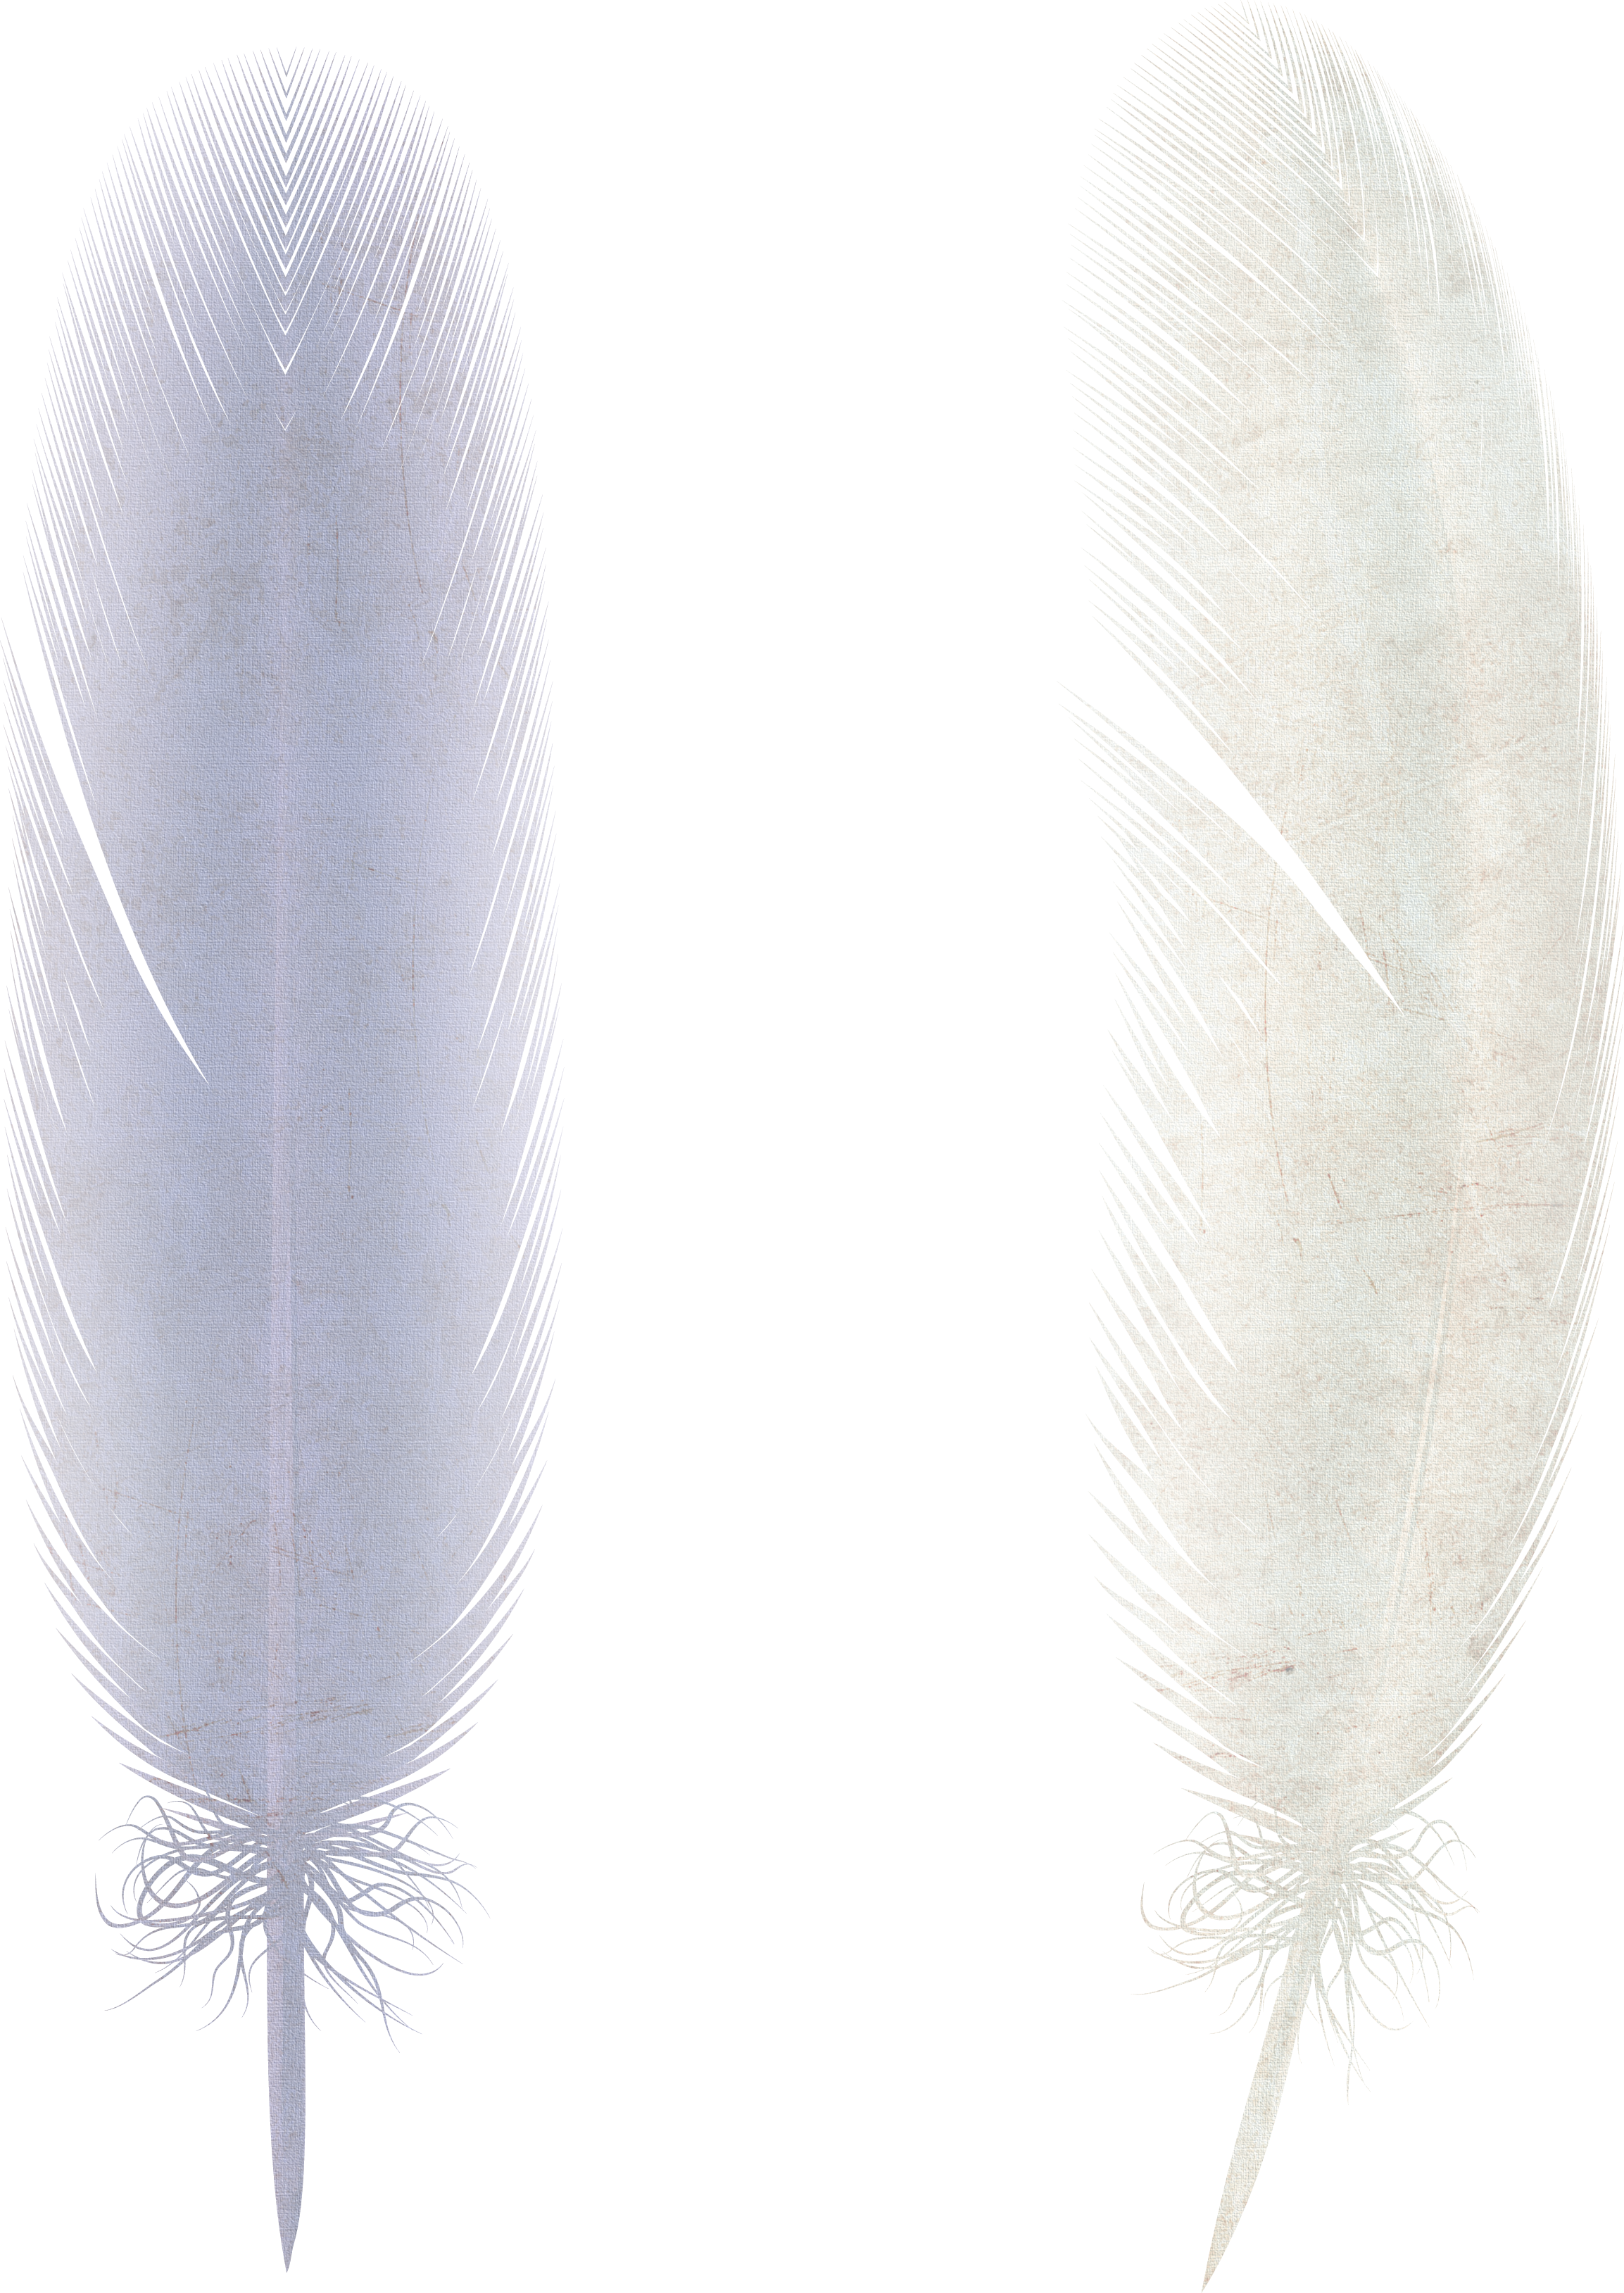 Free download of Feather PNG Image Without Background